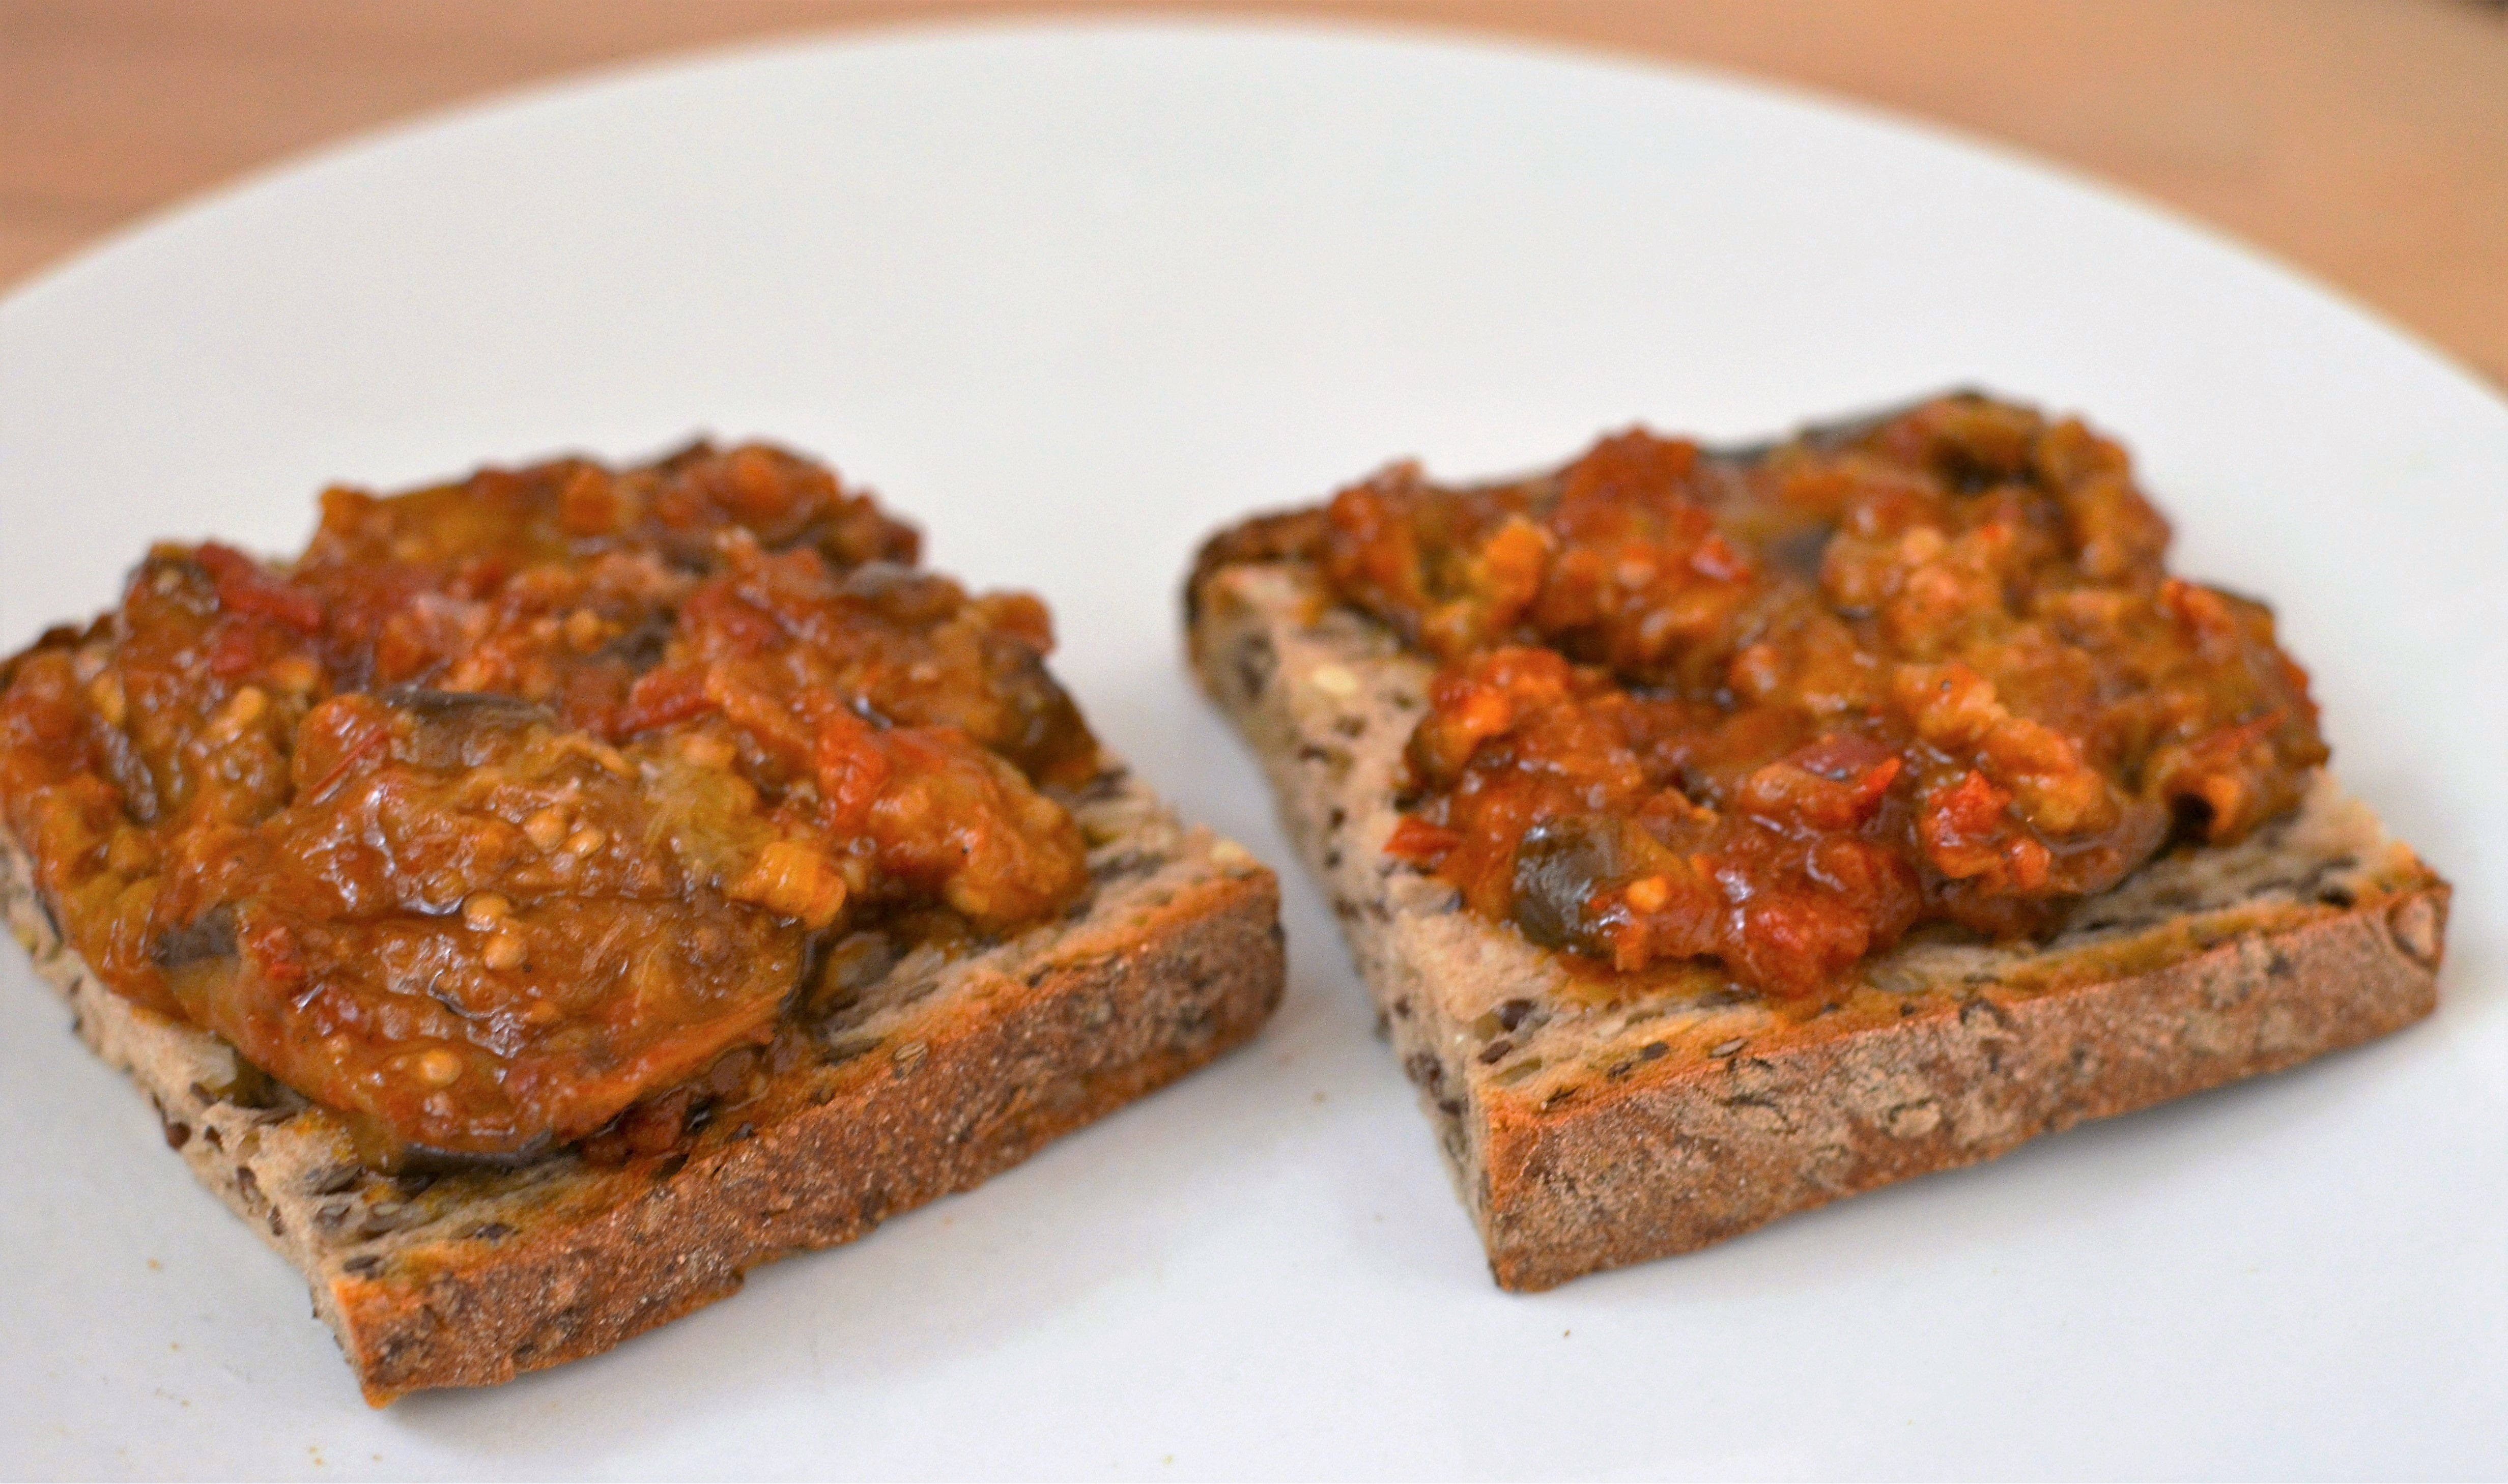 Melanzane fritte (fried eggplant and tomato spread)